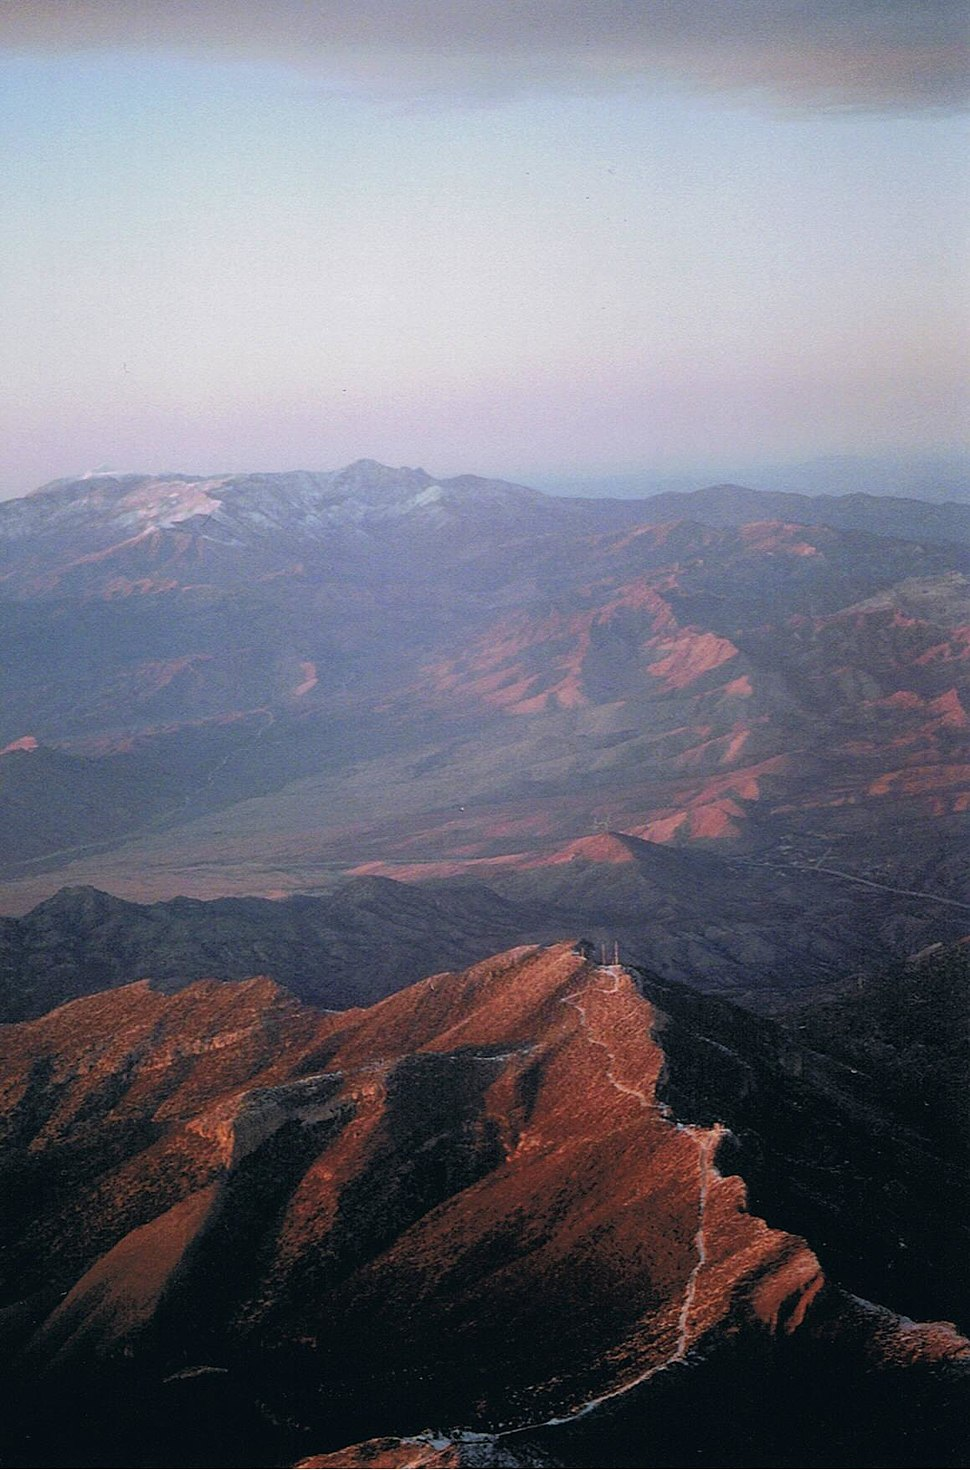 Mountains west of Las Vegas in the Mojave Desert